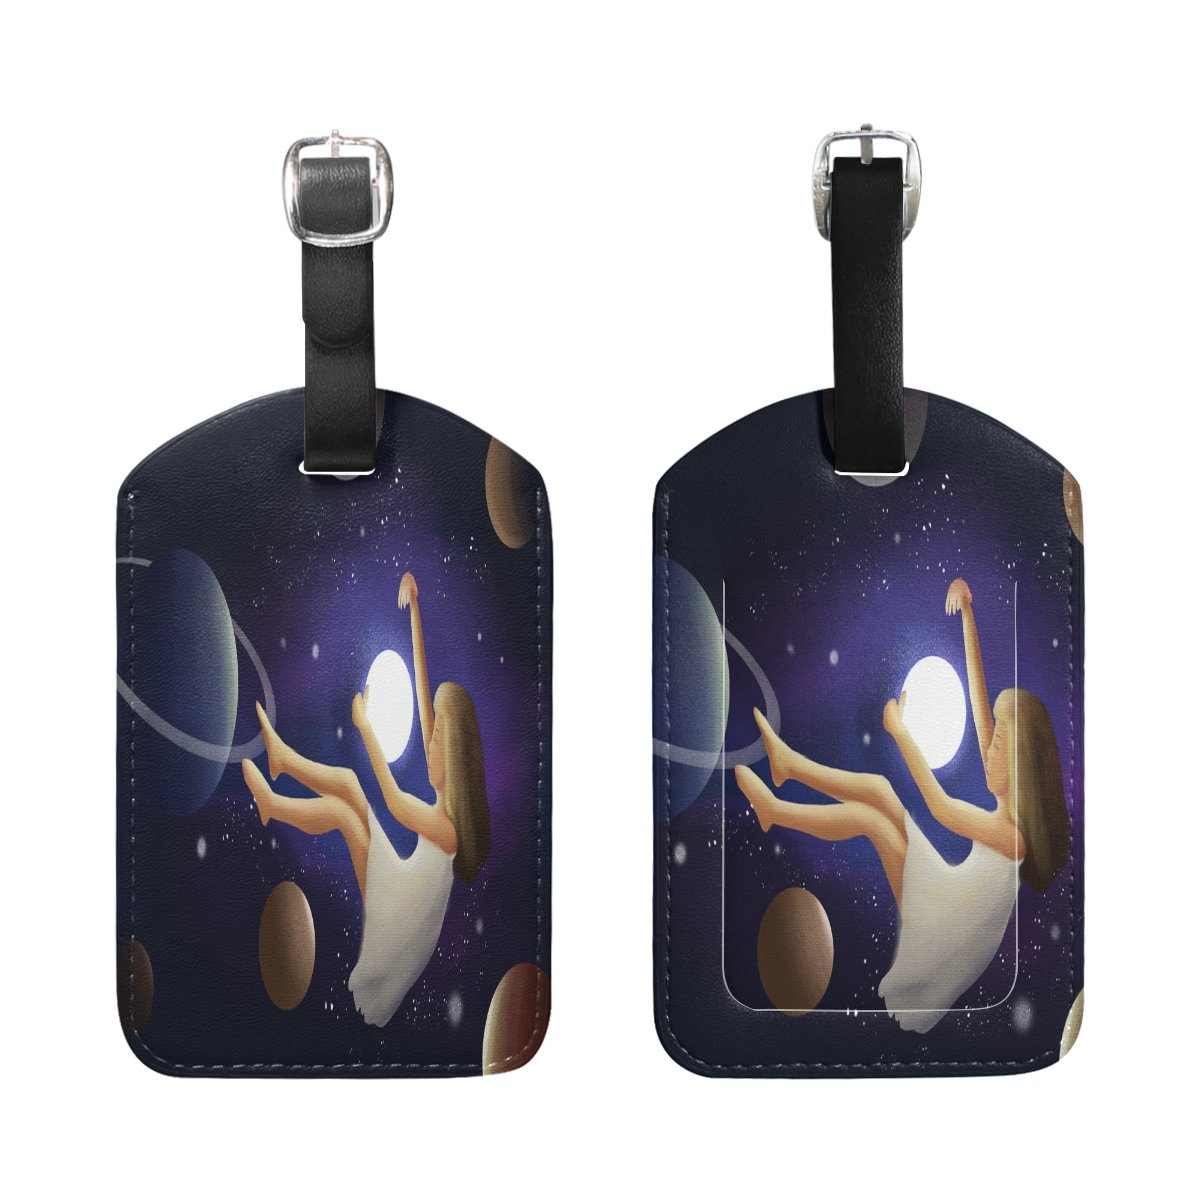 Saobao Travel Luggage Tag Girls And Stars PU Leather Baggage Suitcase Travel ID Bag Tag 1Pcs